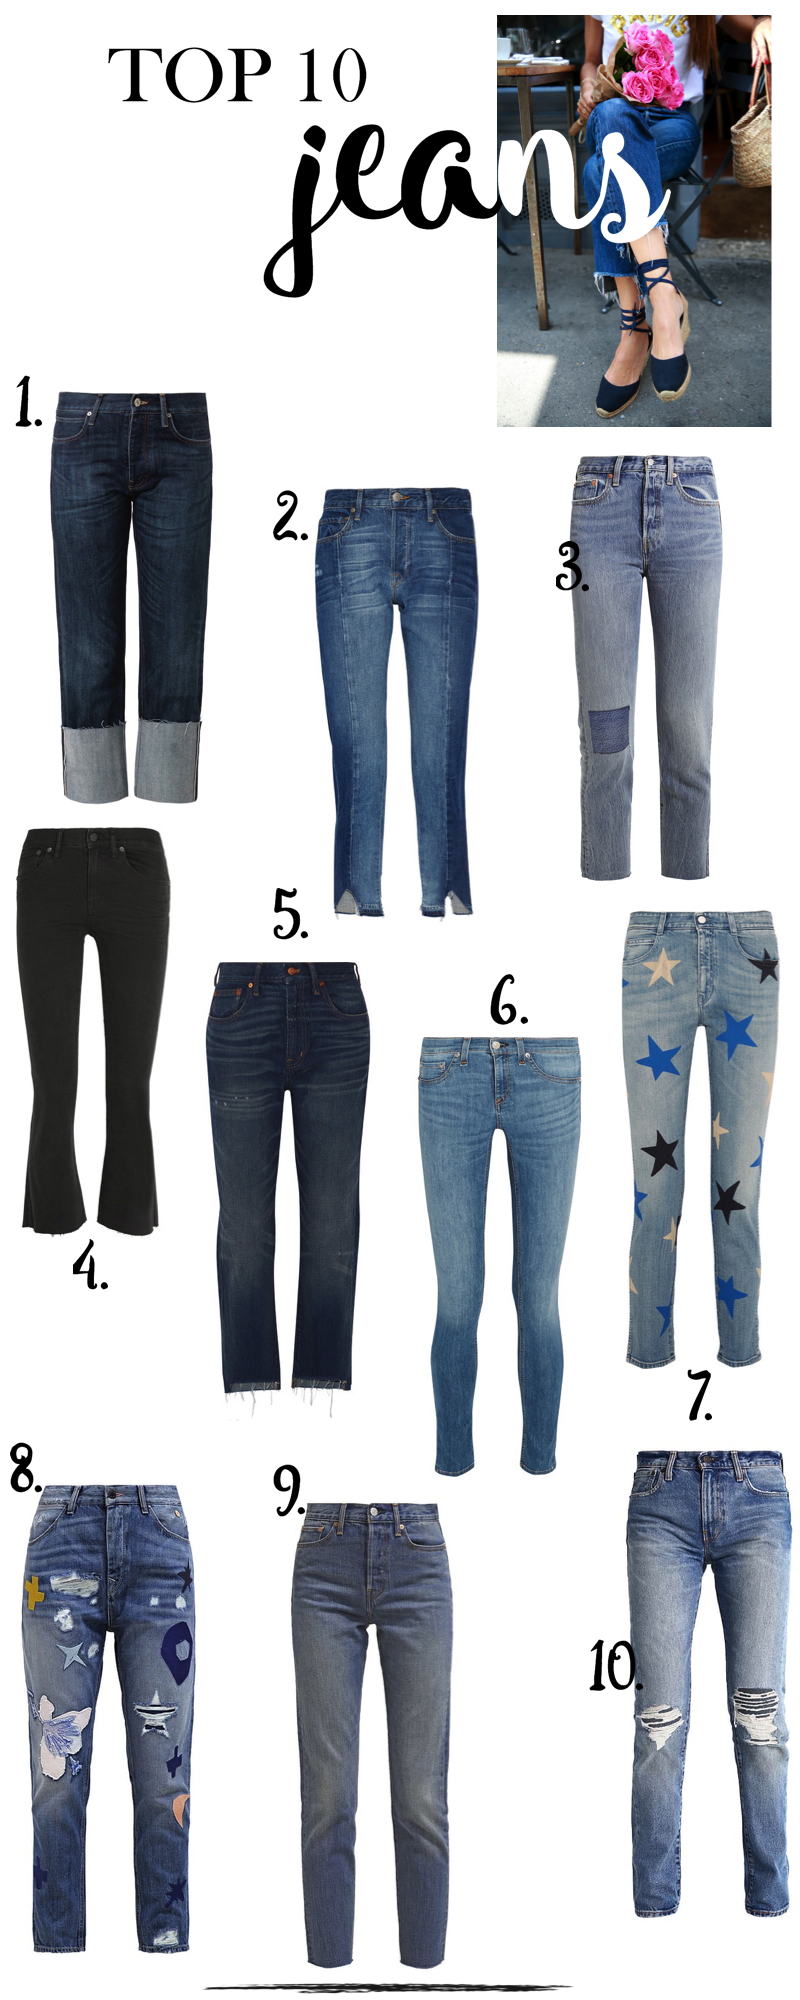 TOP 10 JEANS-97389-bartabacmode